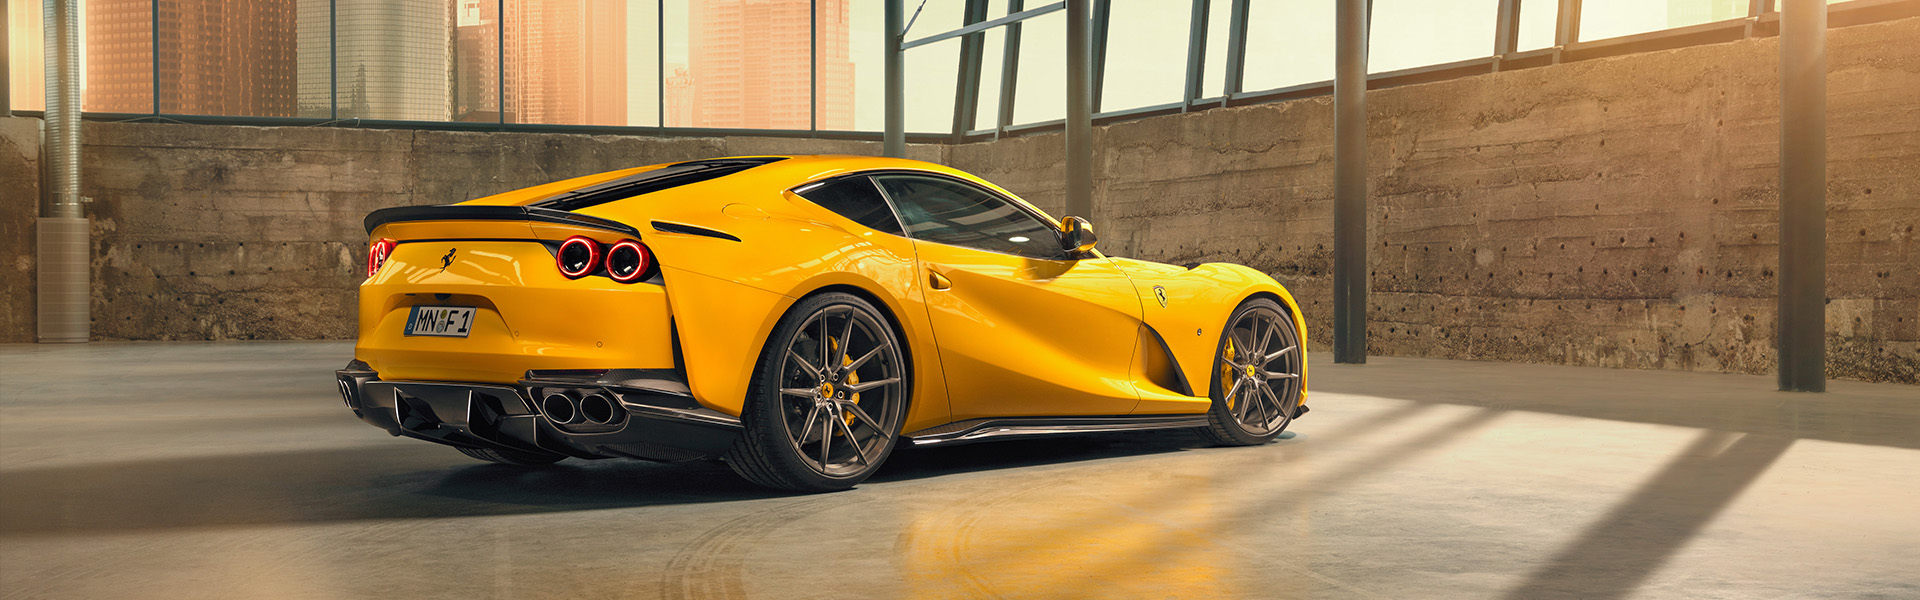 Novitec refines the Ferrari 812 Superfast sound and aerodynamics